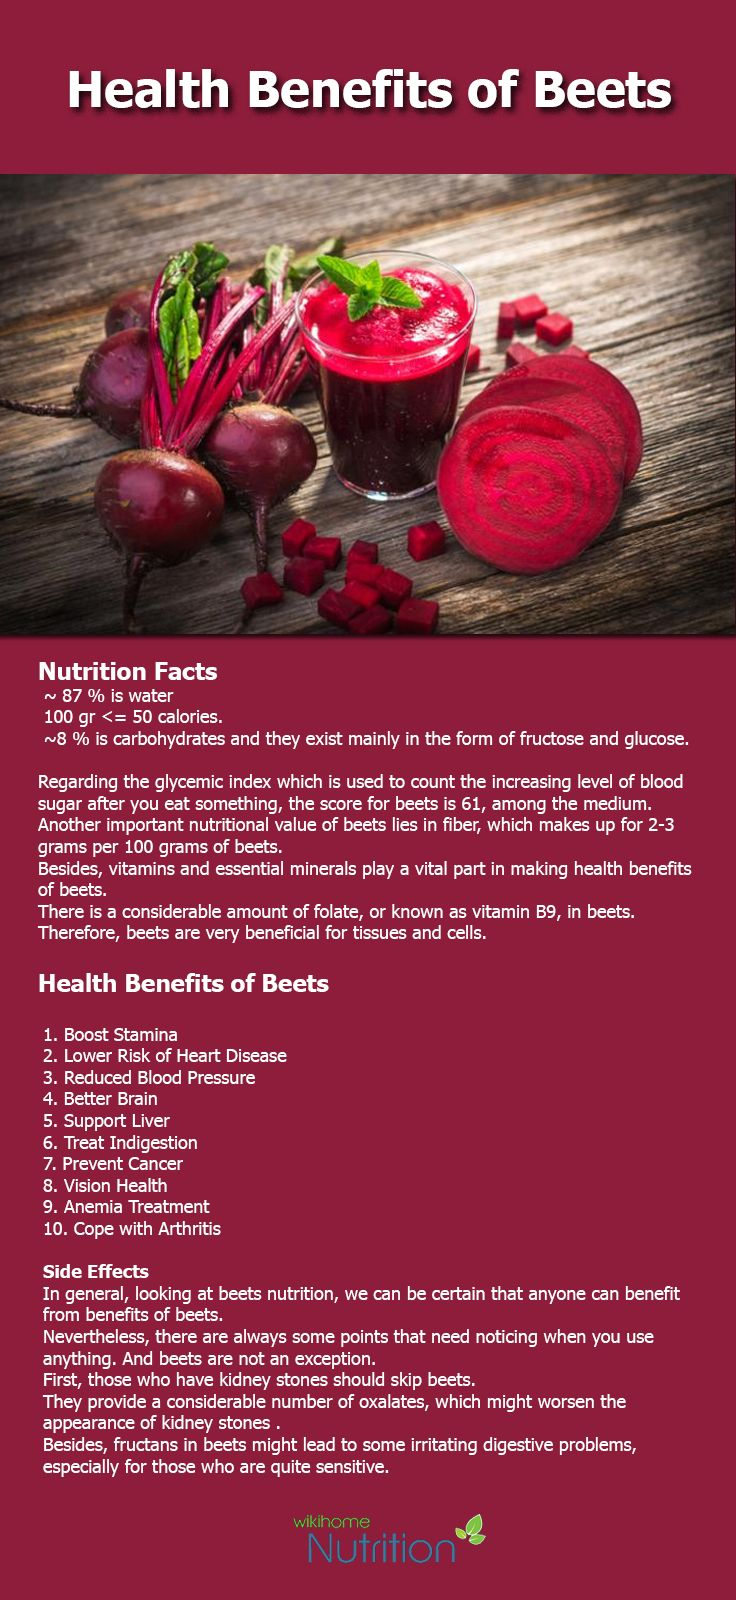 Maybe you don't know health benefits of Beets